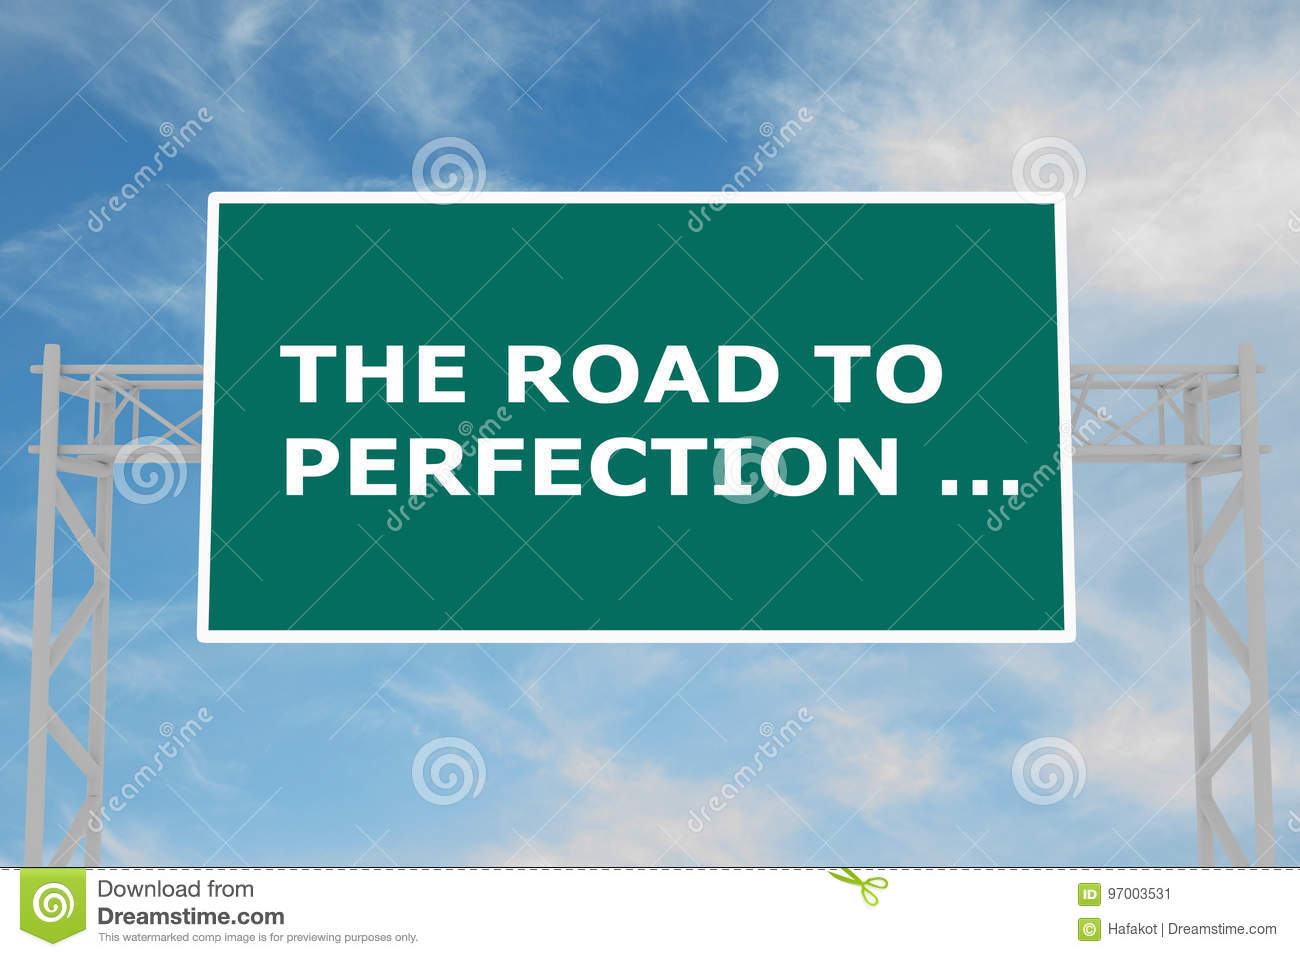 The Road To Perfection … concept